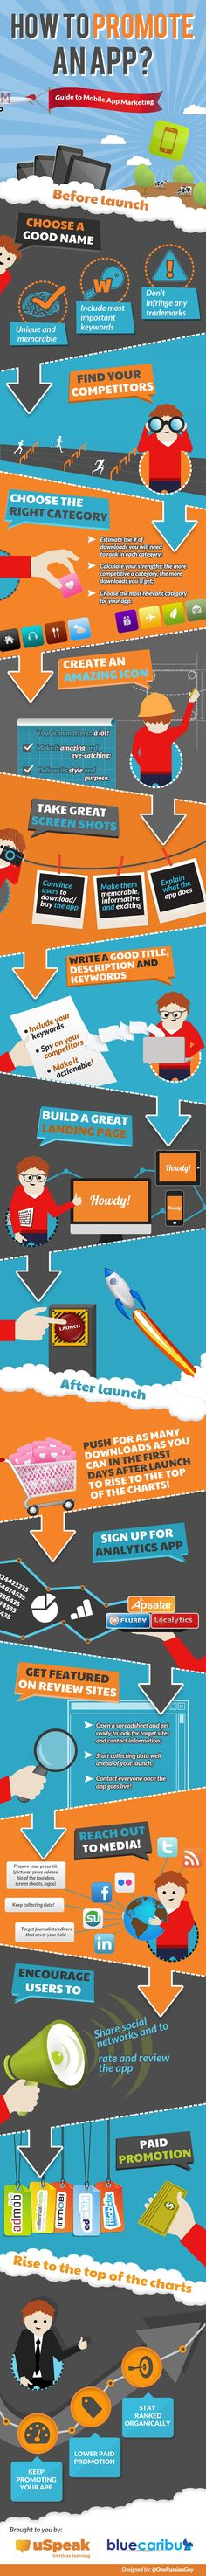 How to promote an APP #infographic